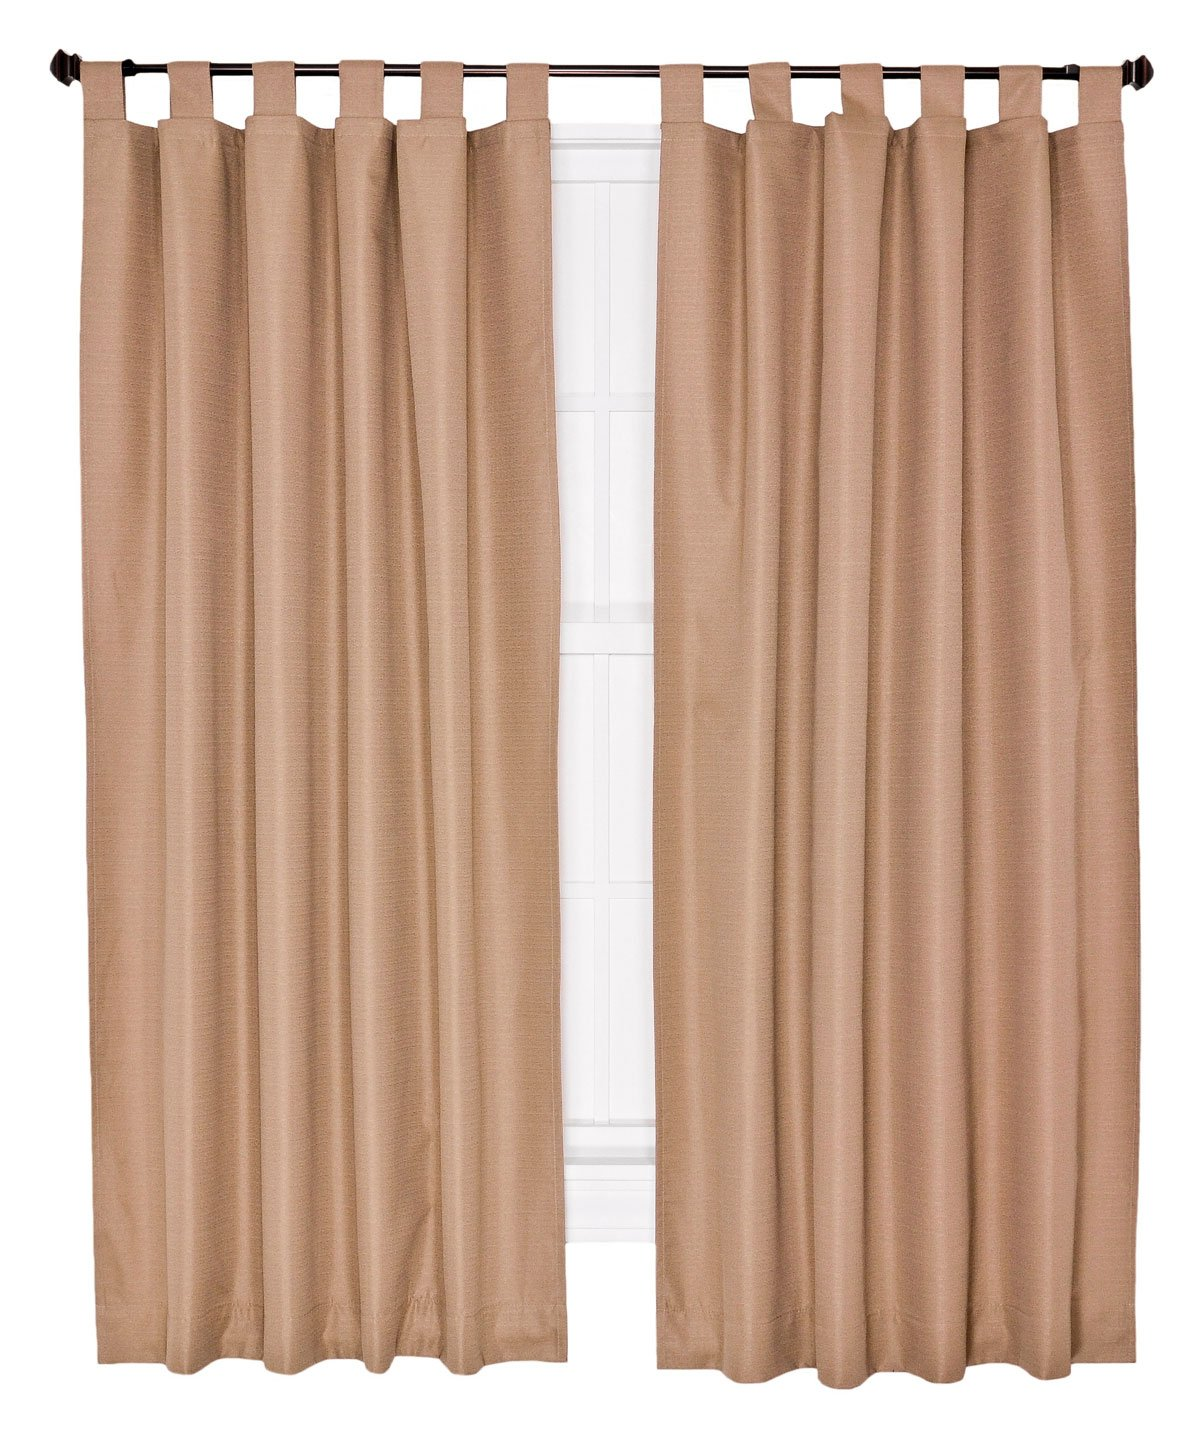 Ellis Curtain Crosby Thermal Insulated 80 by 84-Inch Tab Top Foamback Curtains, Linen